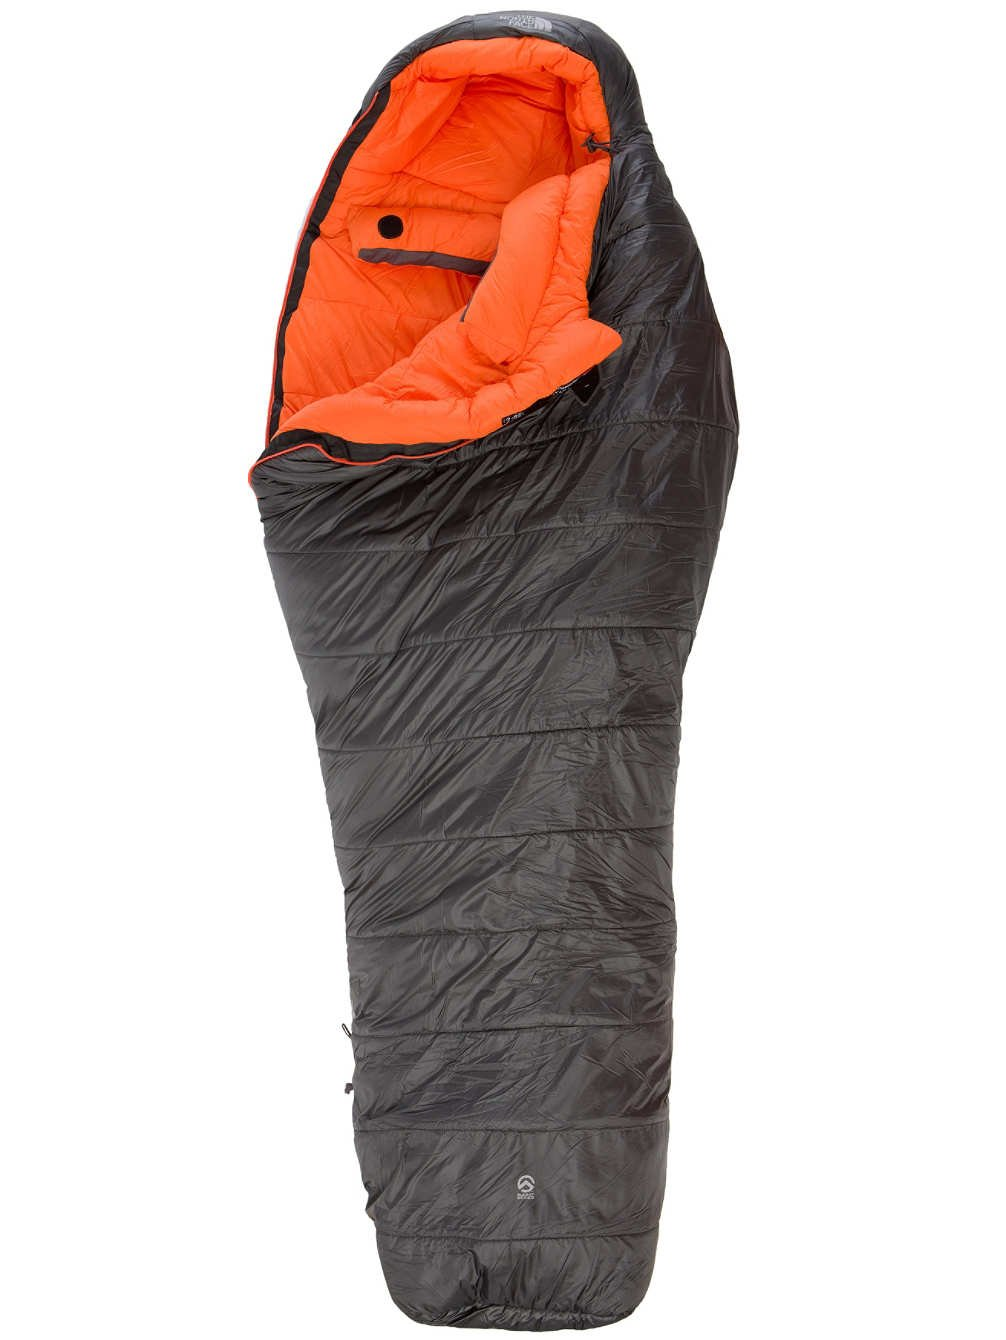 The North Face Schlafsack Dark Star - Saco de dormir momia para acampada, color gris, talla L: Amazon.es: Deportes y aire libre